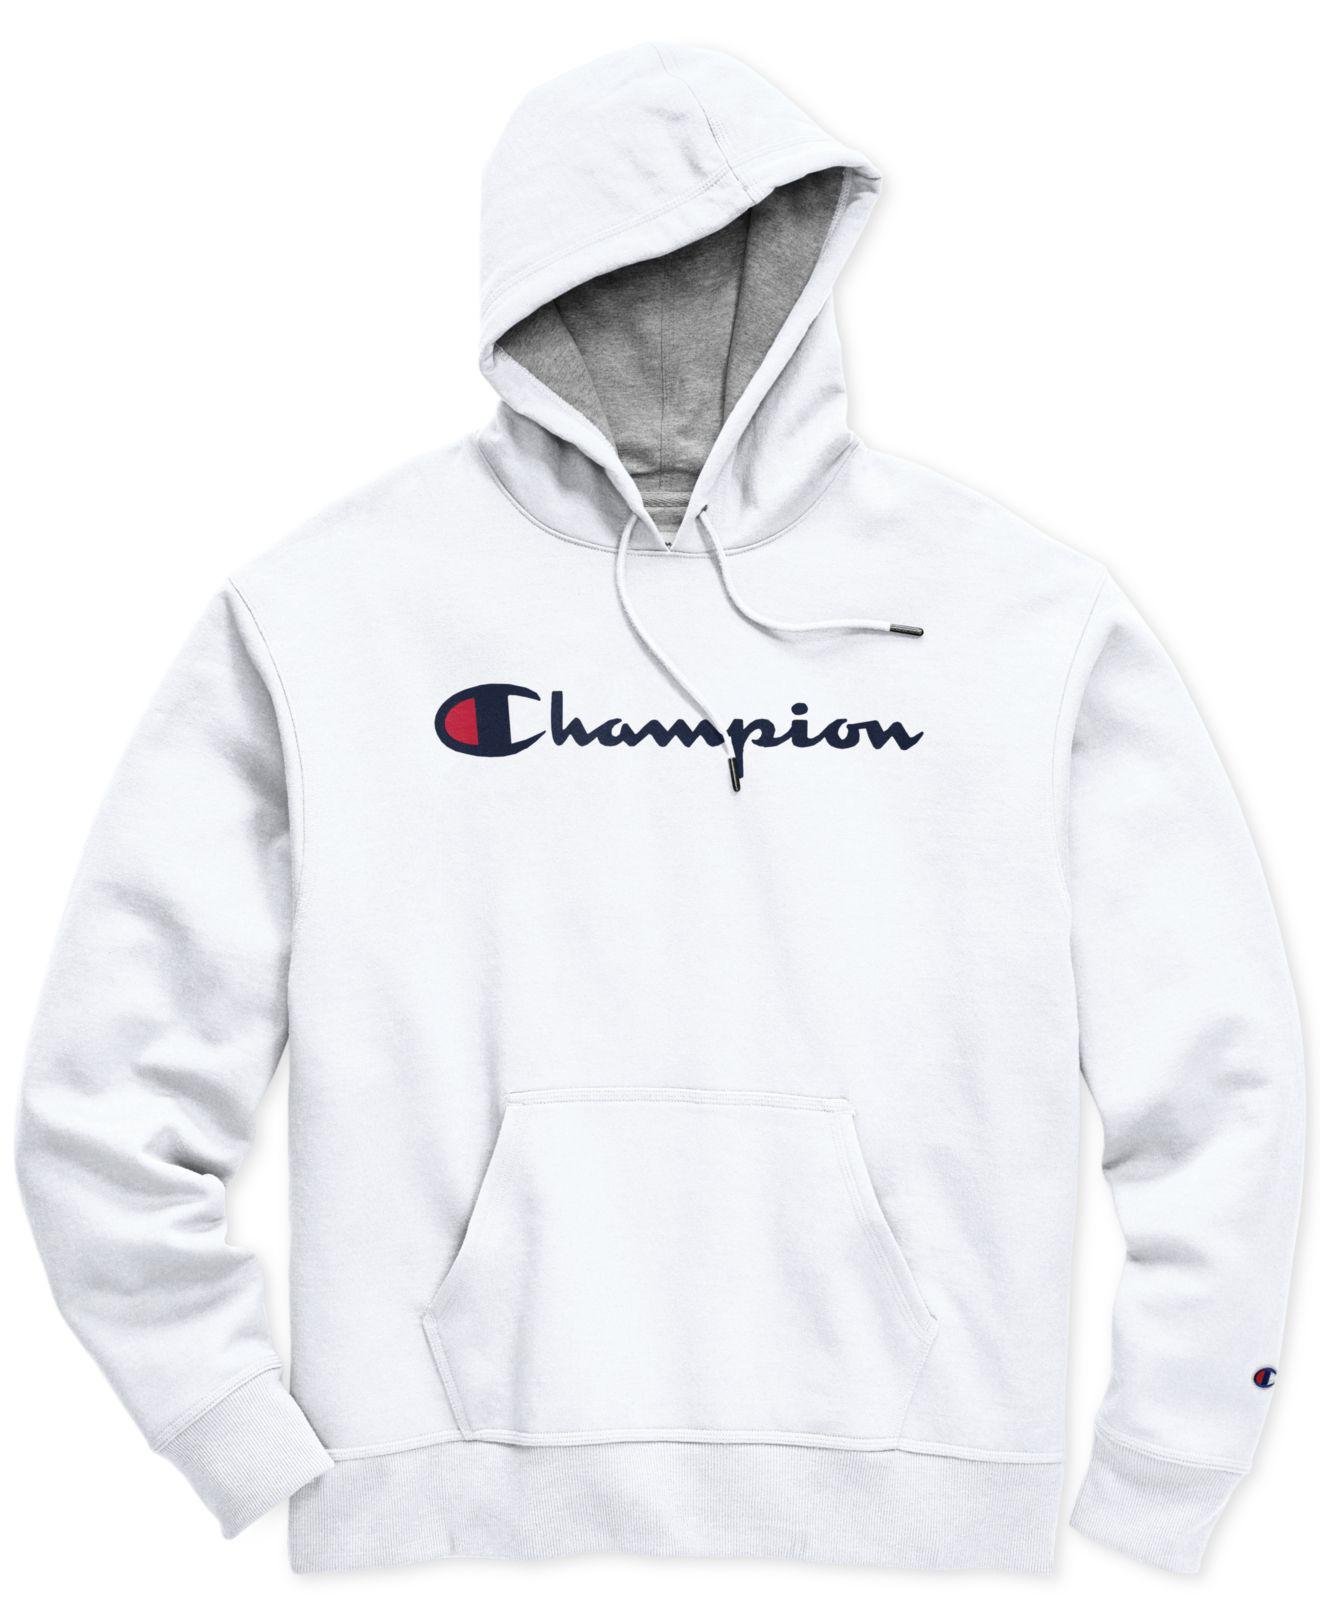 79aa33bd4018 Lyst - Champion White Script Logo Hoodie in White for Men - Save 85%